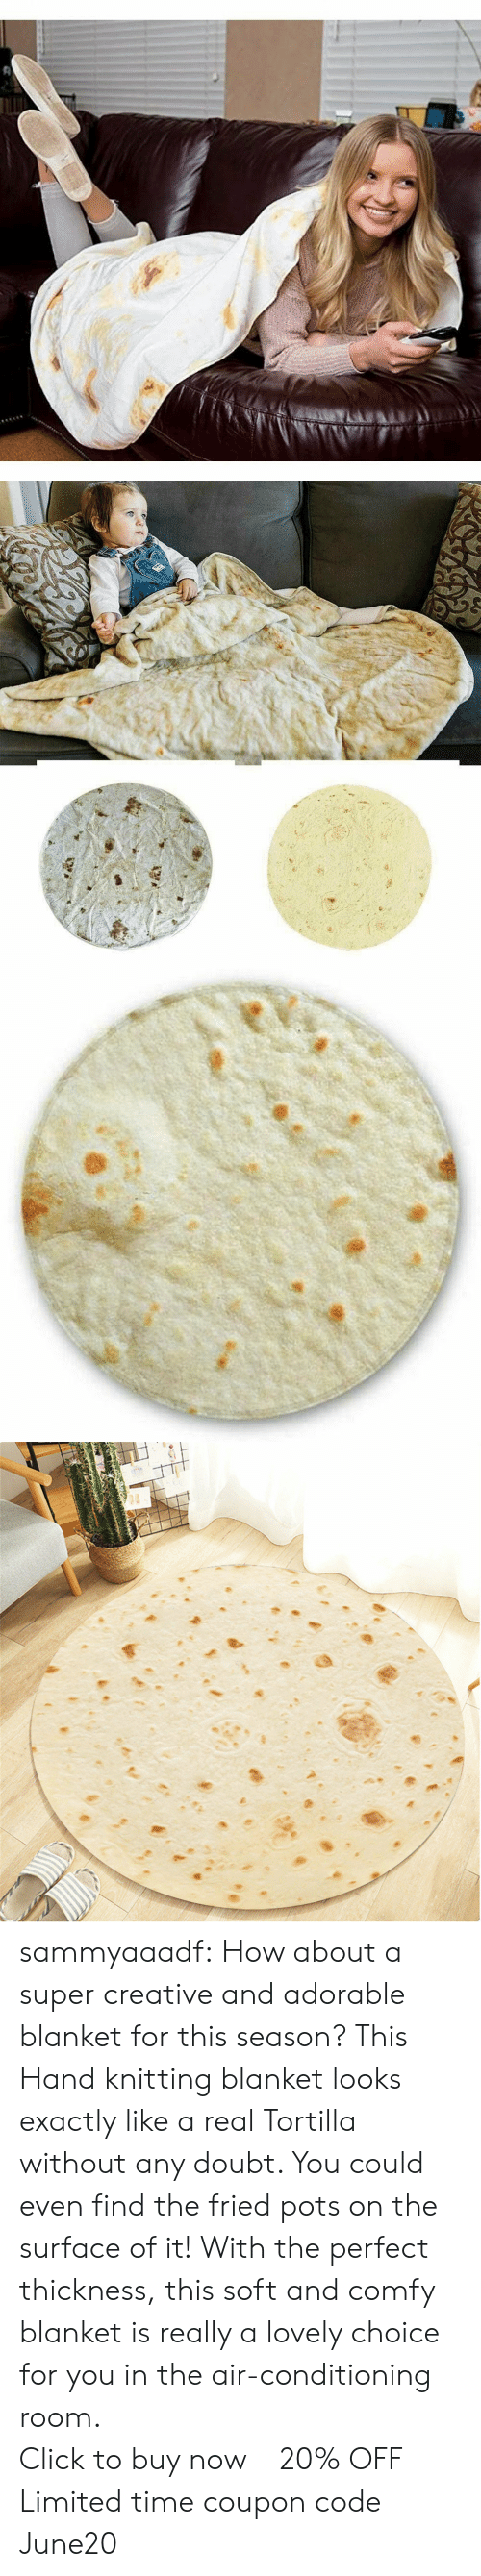 pots: sammyaaadf: How about a super creative and adorable blanket for this season? This Hand knitting blanket looks exactly like a real Tortilla without any doubt. You could even find the fried pots on the surface of it! With the perfect thickness, this soft and comfy blanket is really a lovely choice for you in the air-conditioning room.                    Click to buy now !  20% OFF Limited time coupon code : June20